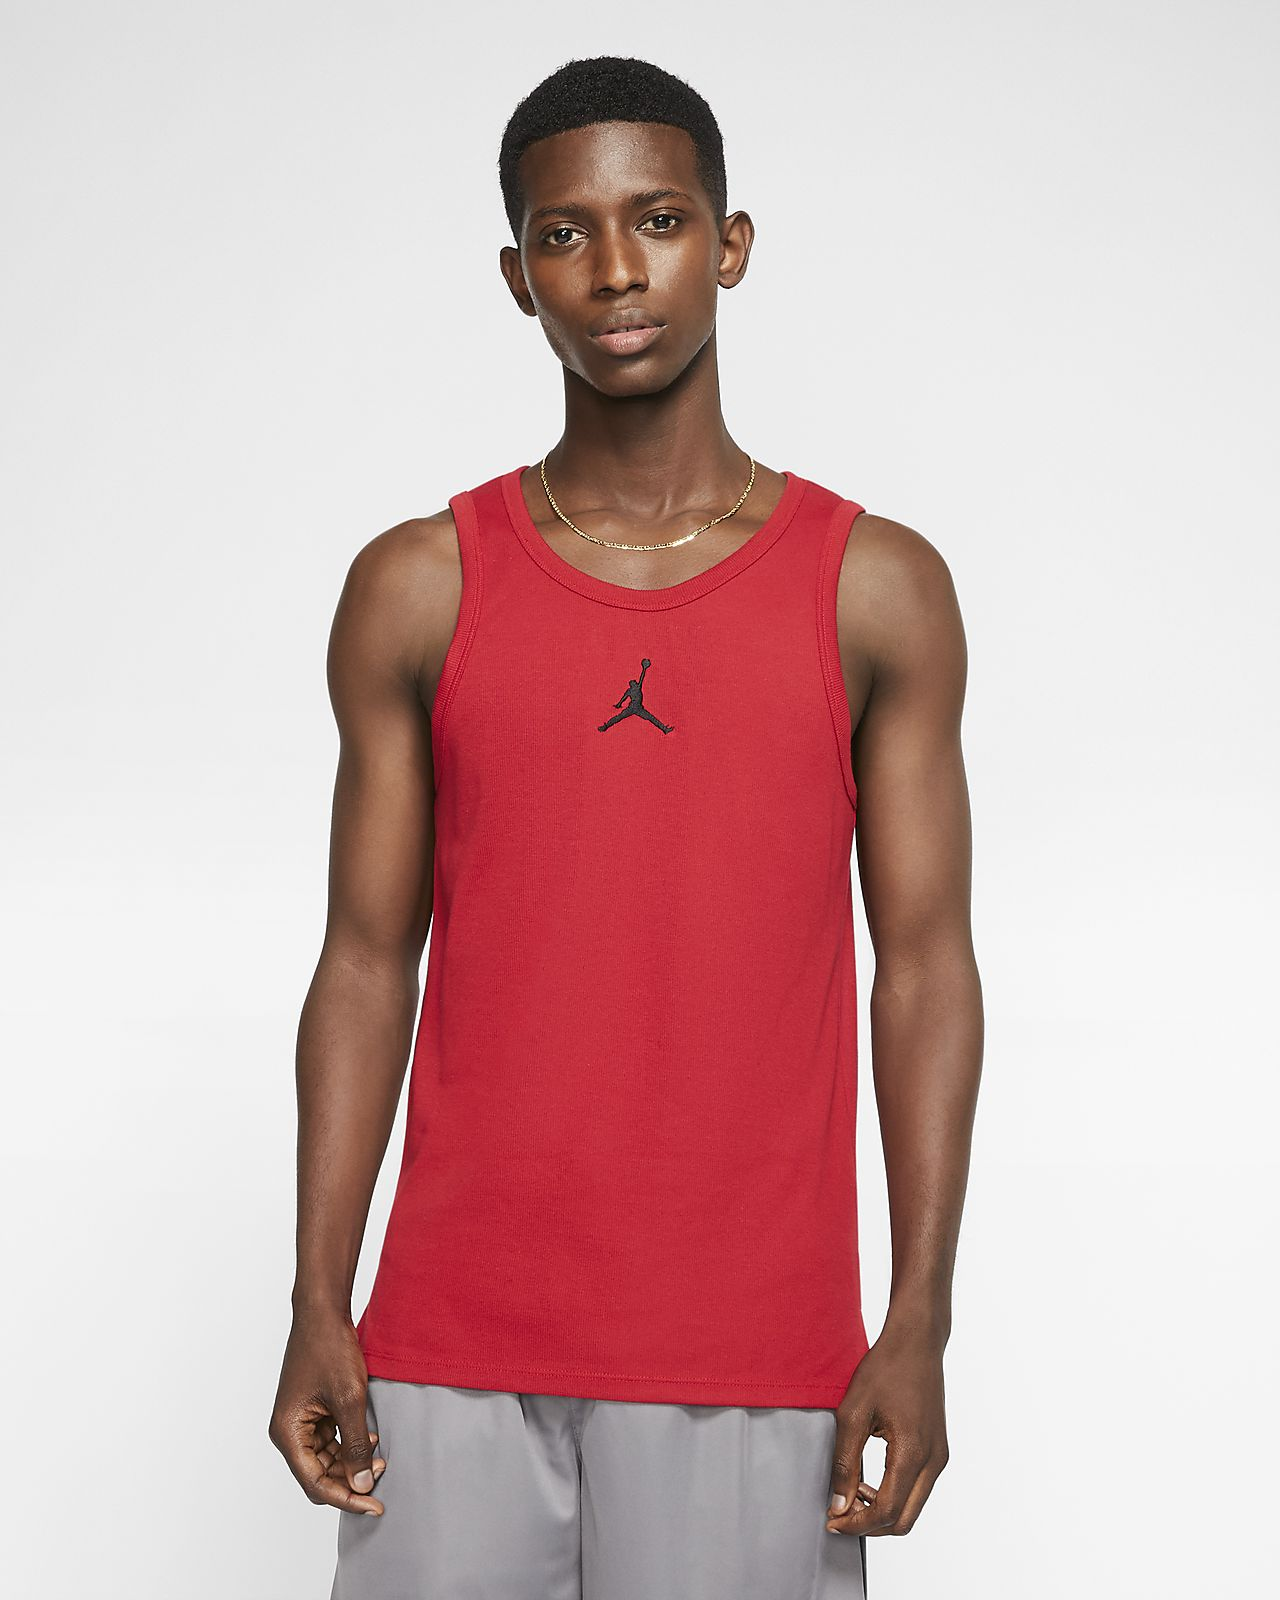 Jordan 23 Alpha Buzzer Beater Men's Basketball Tank